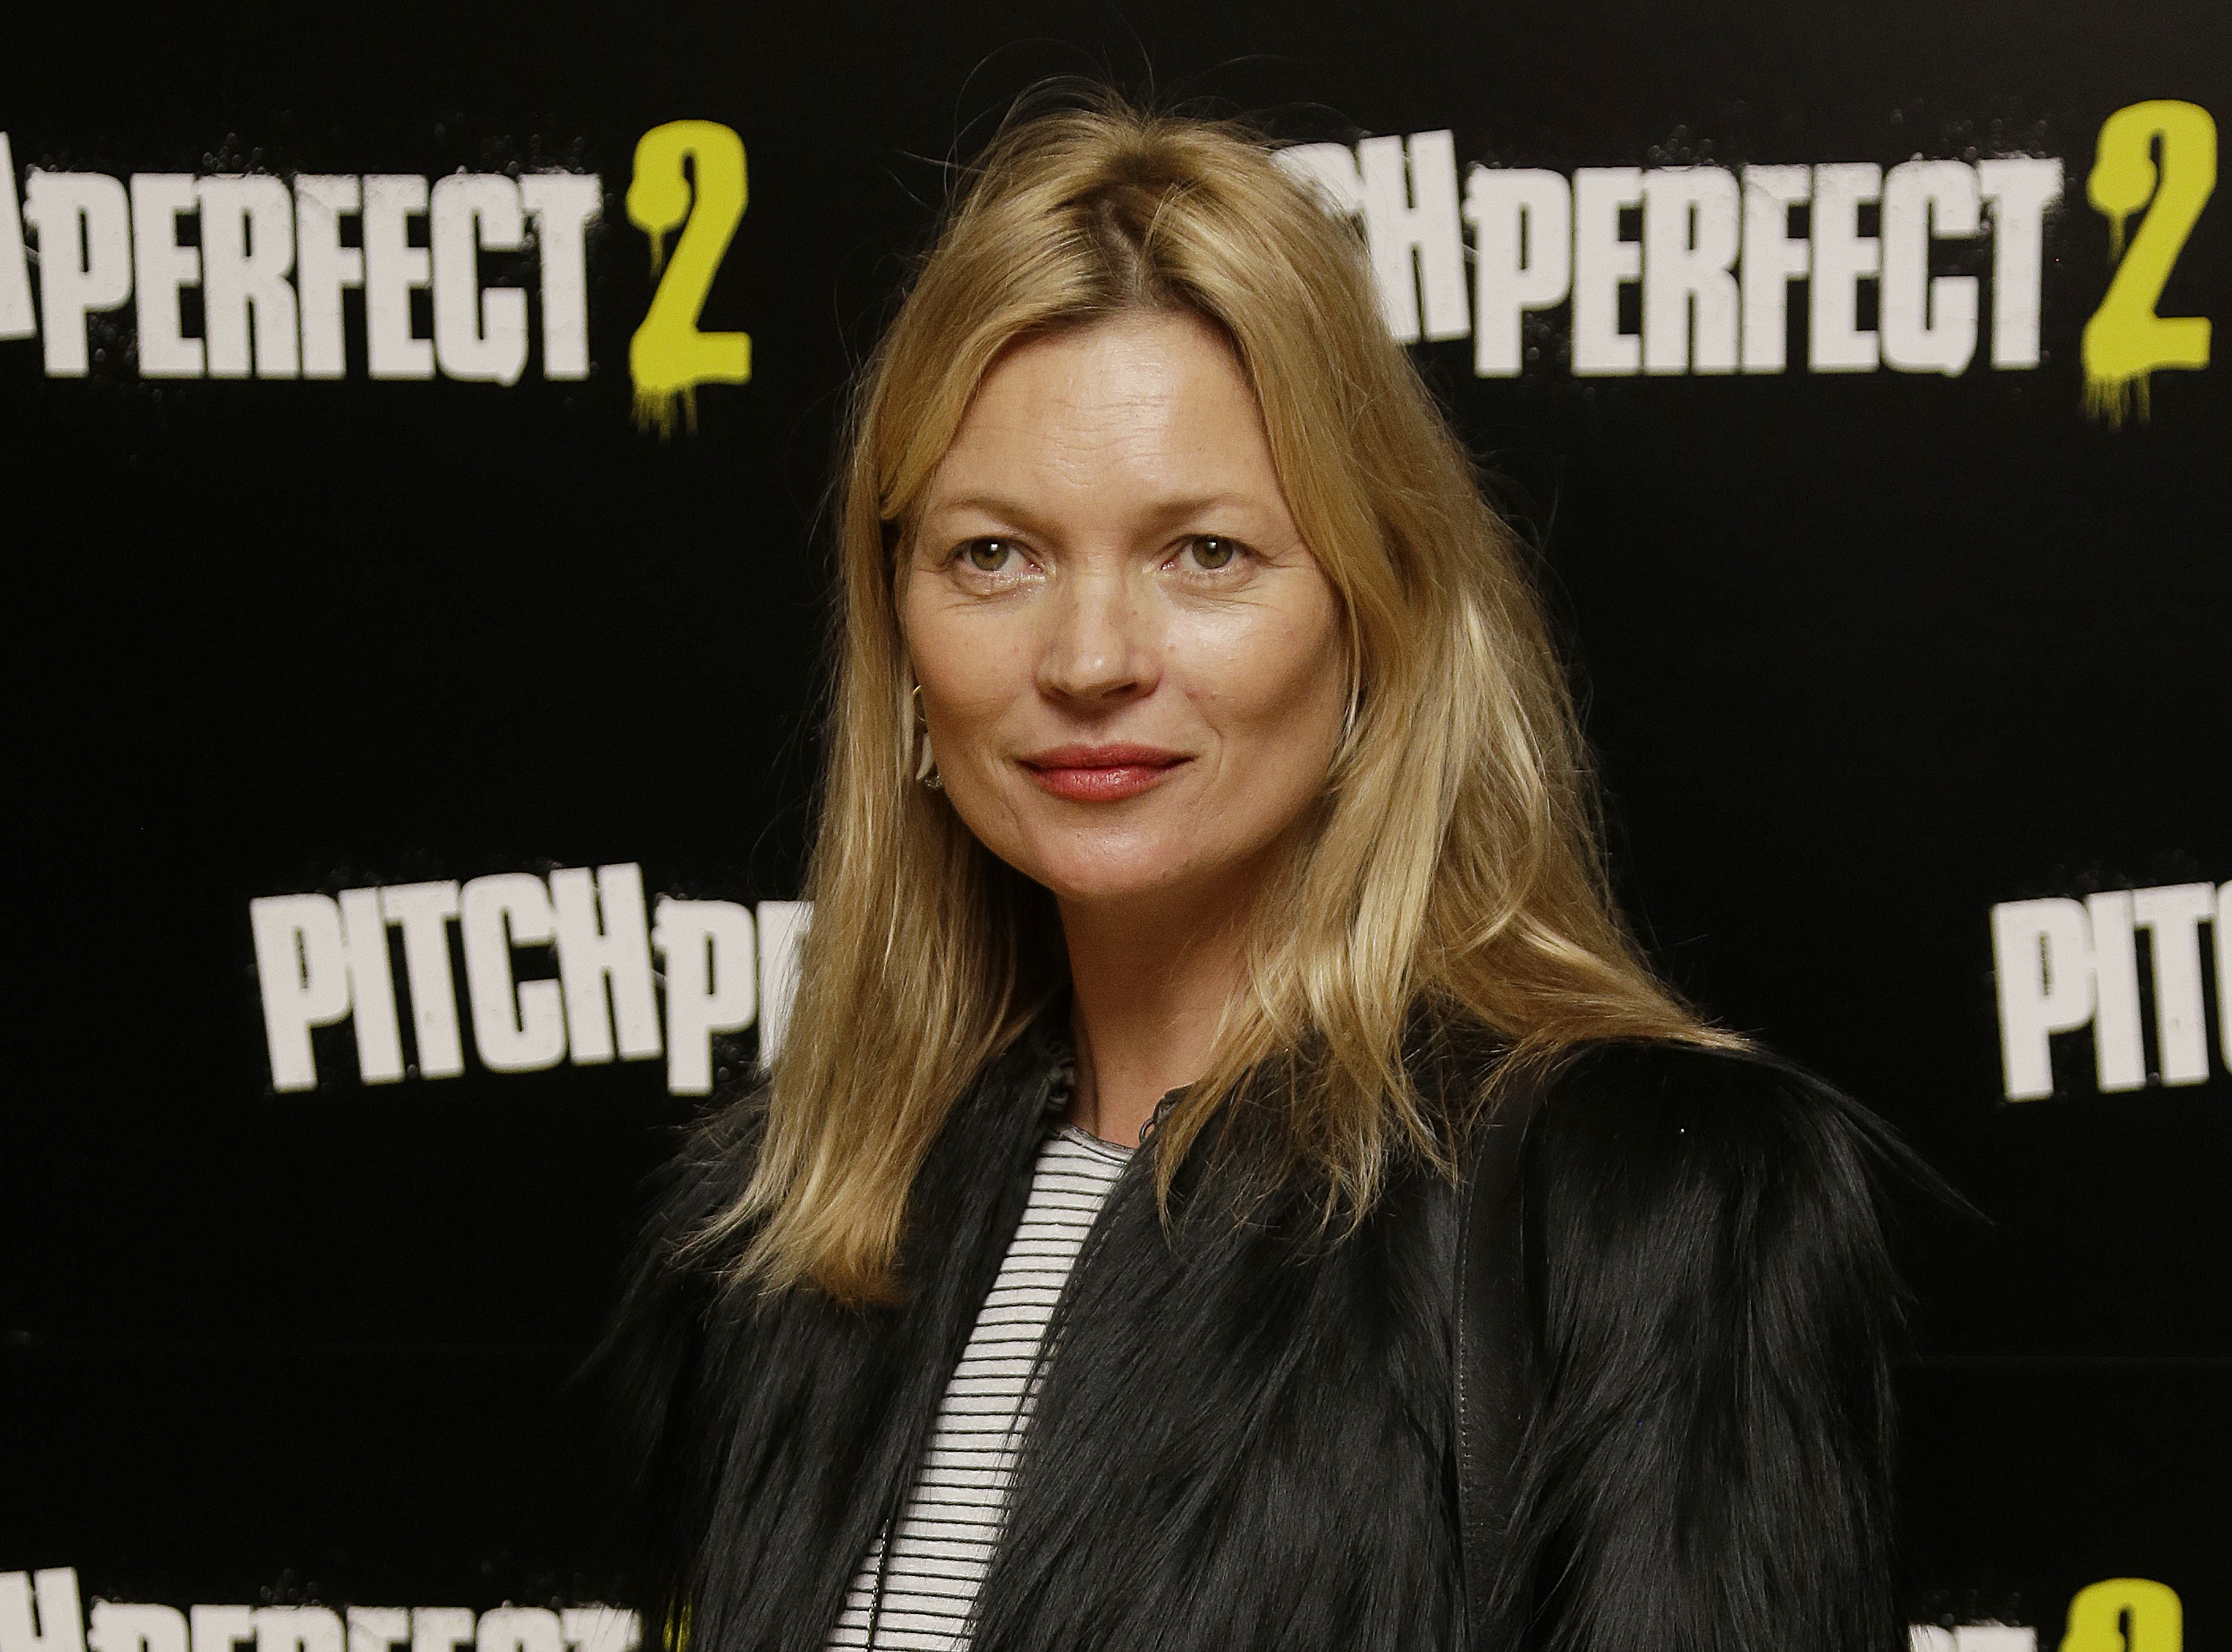 Kate Moss poses for photographers at the screening of Pitch Perfect 2 in central London.